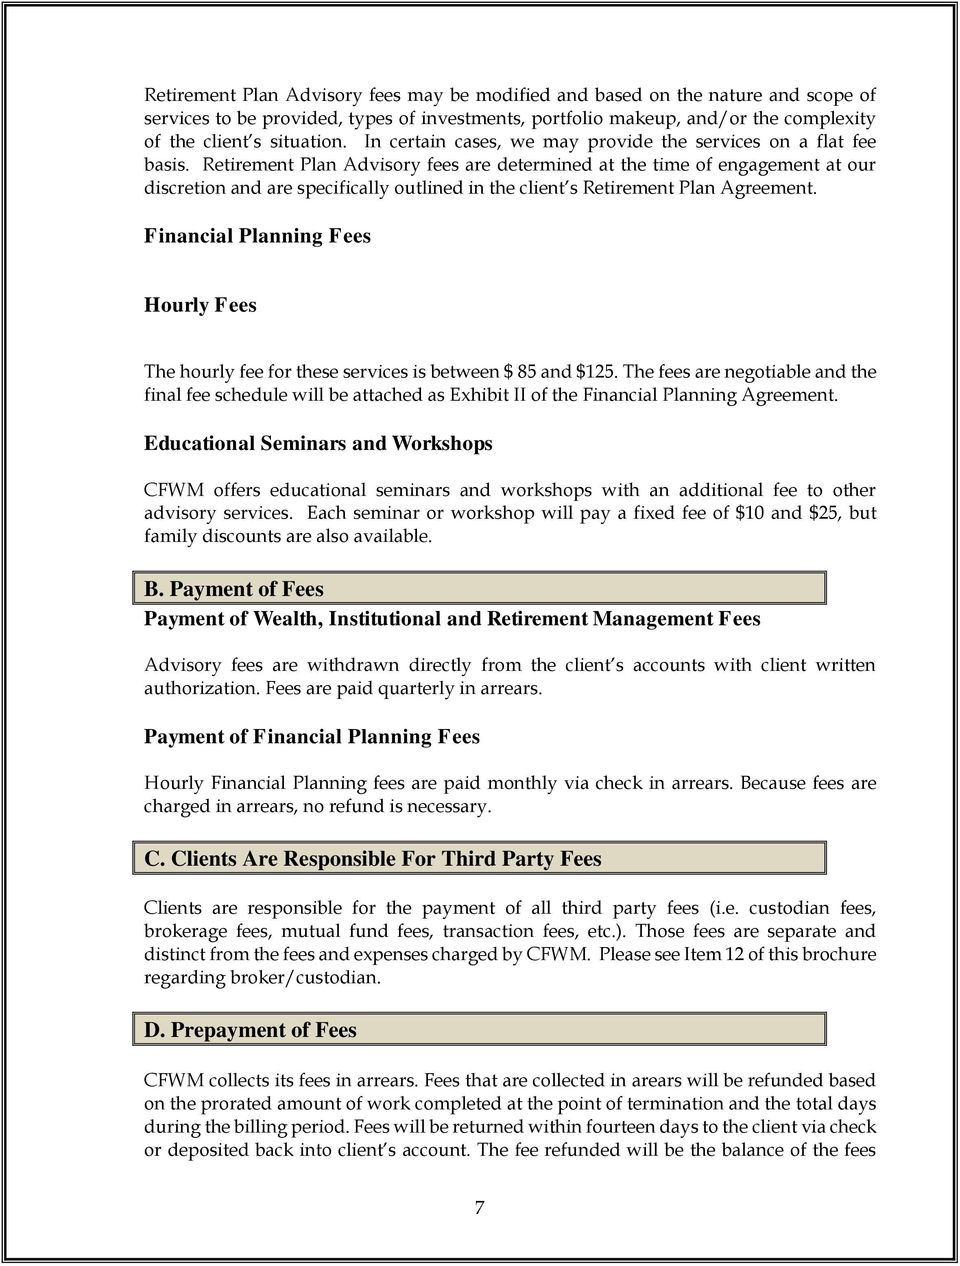 Retirement Plan Advisory fees are determined at the time of engagement at our discretion and are specifically outlined in the client s Retirement Plan Agreement.